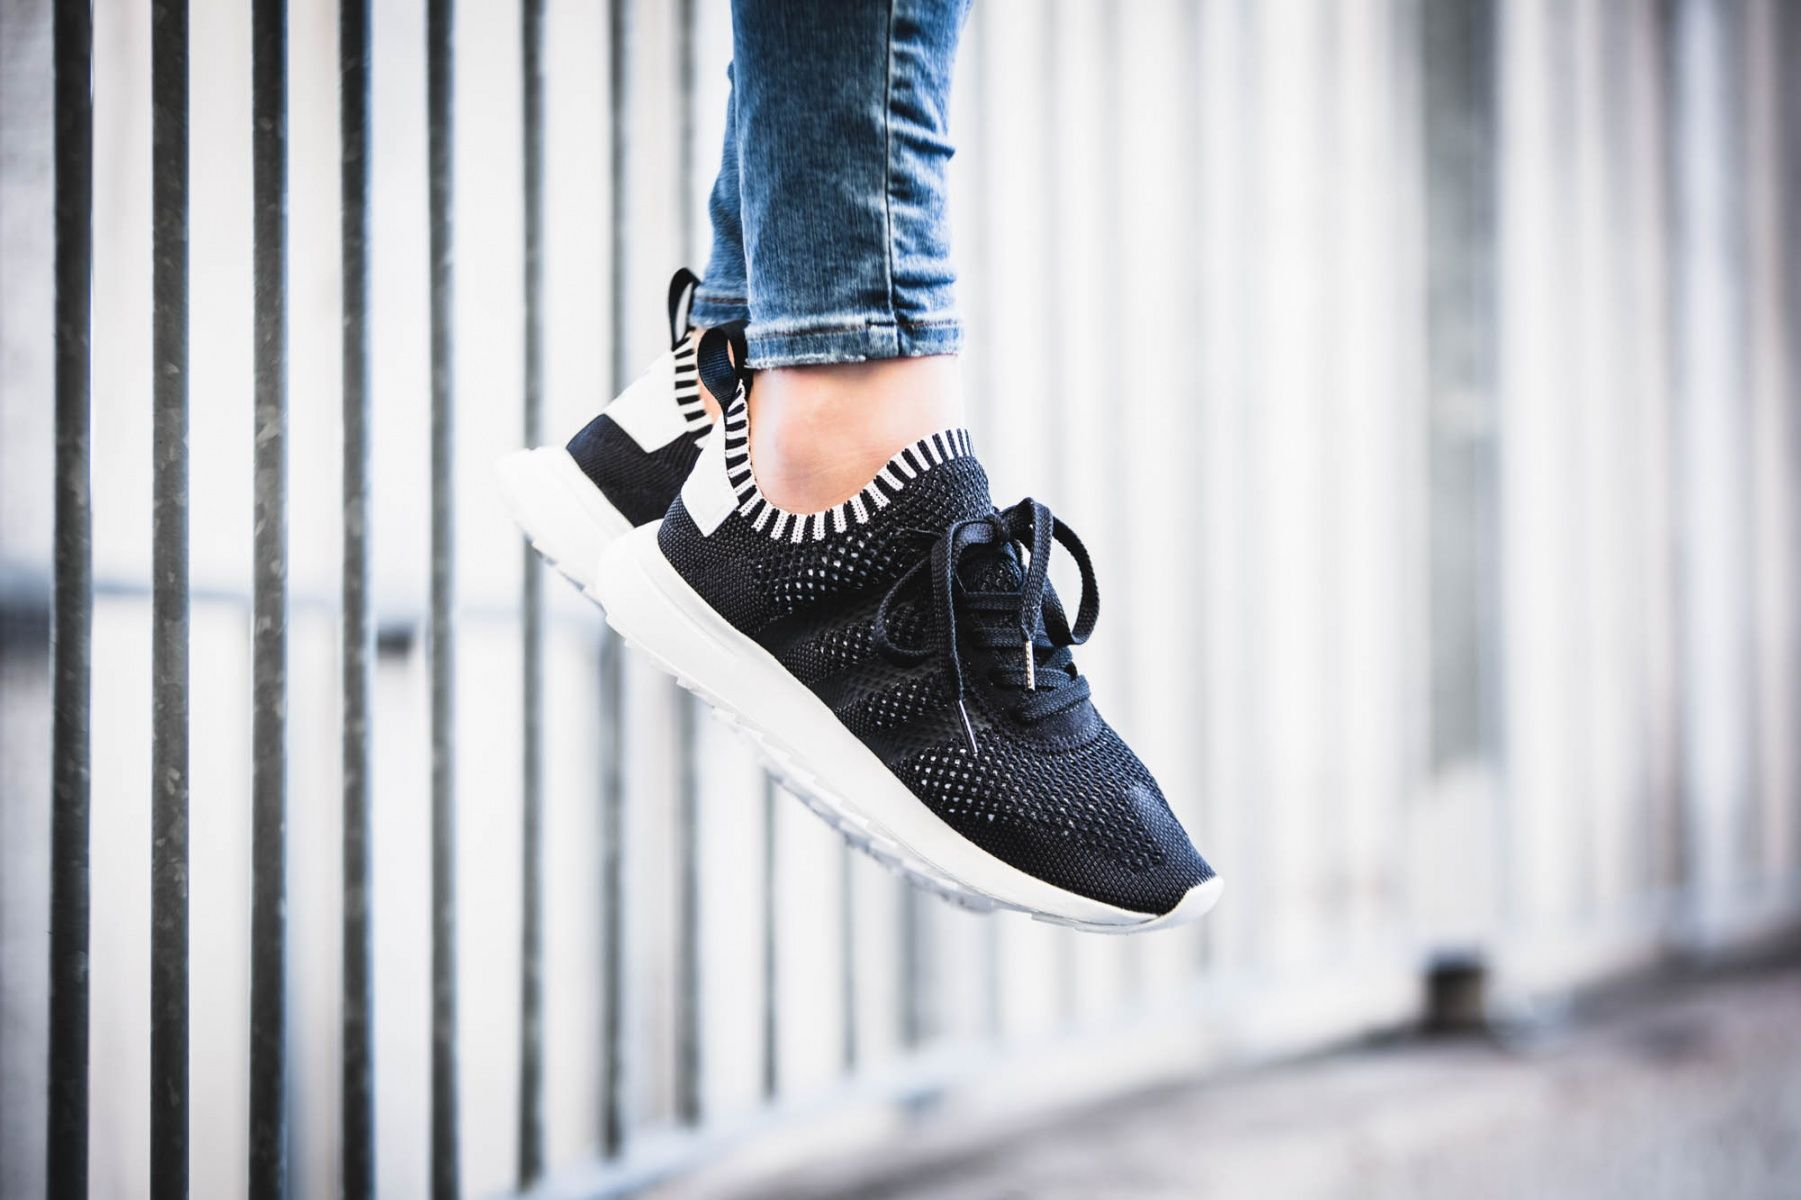 super popular 6bee1 8c48e DOPEEEE Sneaker Stores, Runners, Bag Accessories, Kicks, Fashion Beauty,  Joggers,